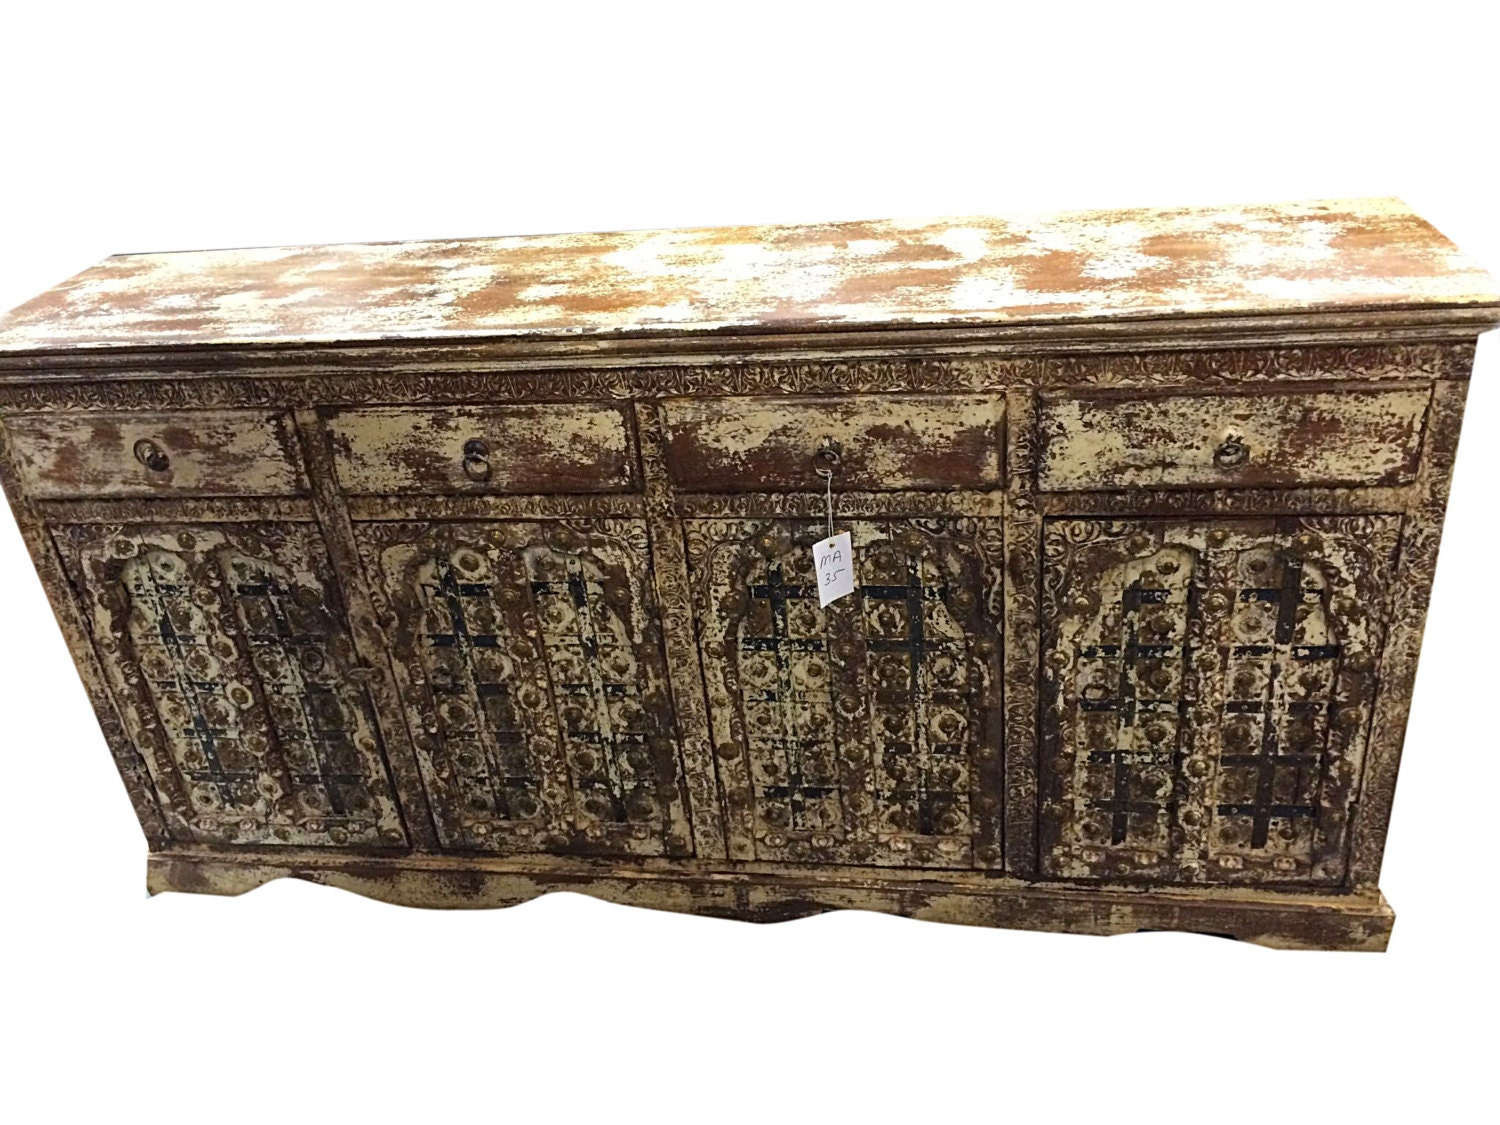 Indian Sideboard Antique Furniture Rustic By MOGULGALLERY